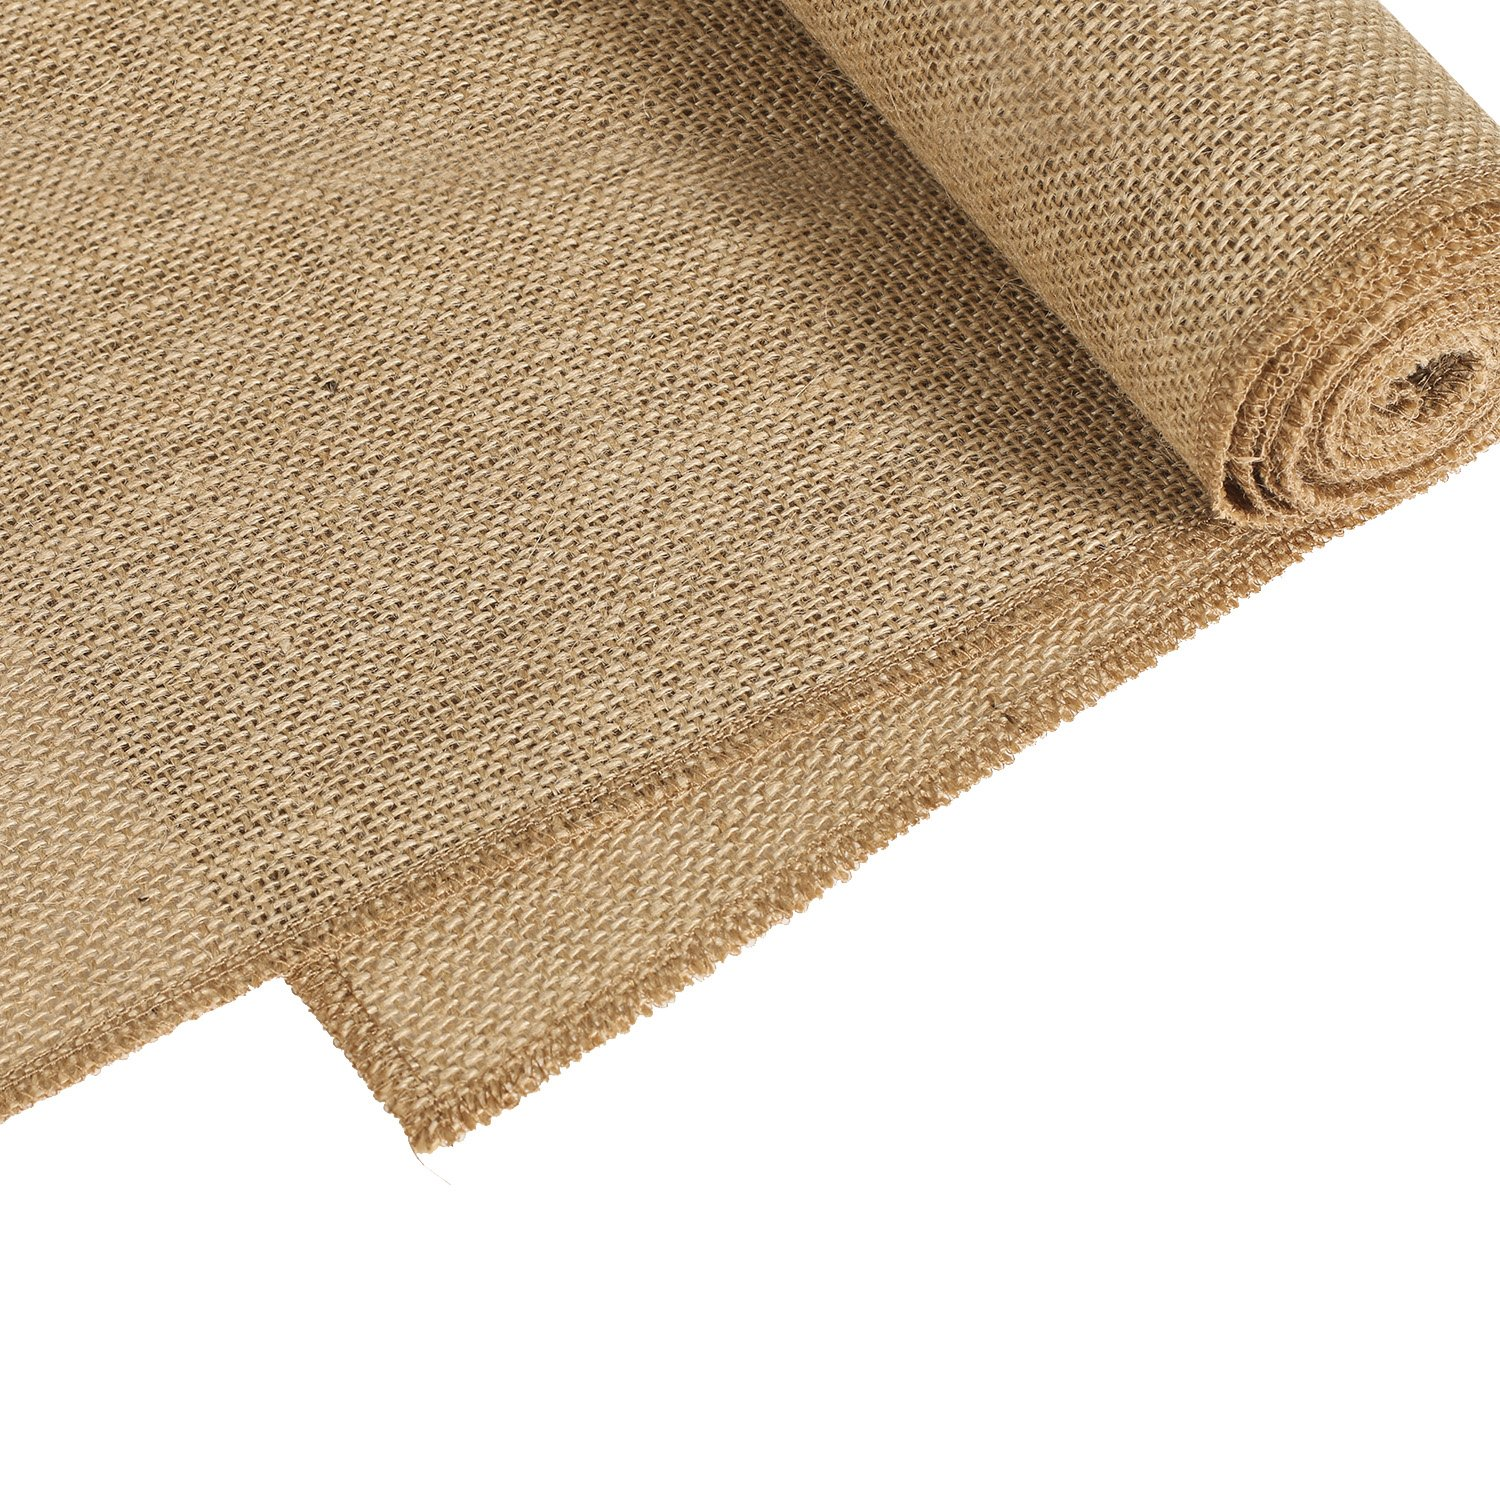 Ling's moment 12''x108'' Nearly Natural Burlap Wedding Table Runner Jute Spring Summer Easter Decoration Country Rustic Wedding Decorations Farmhouse Kitchen Decor by Ling's moment (Image #2)